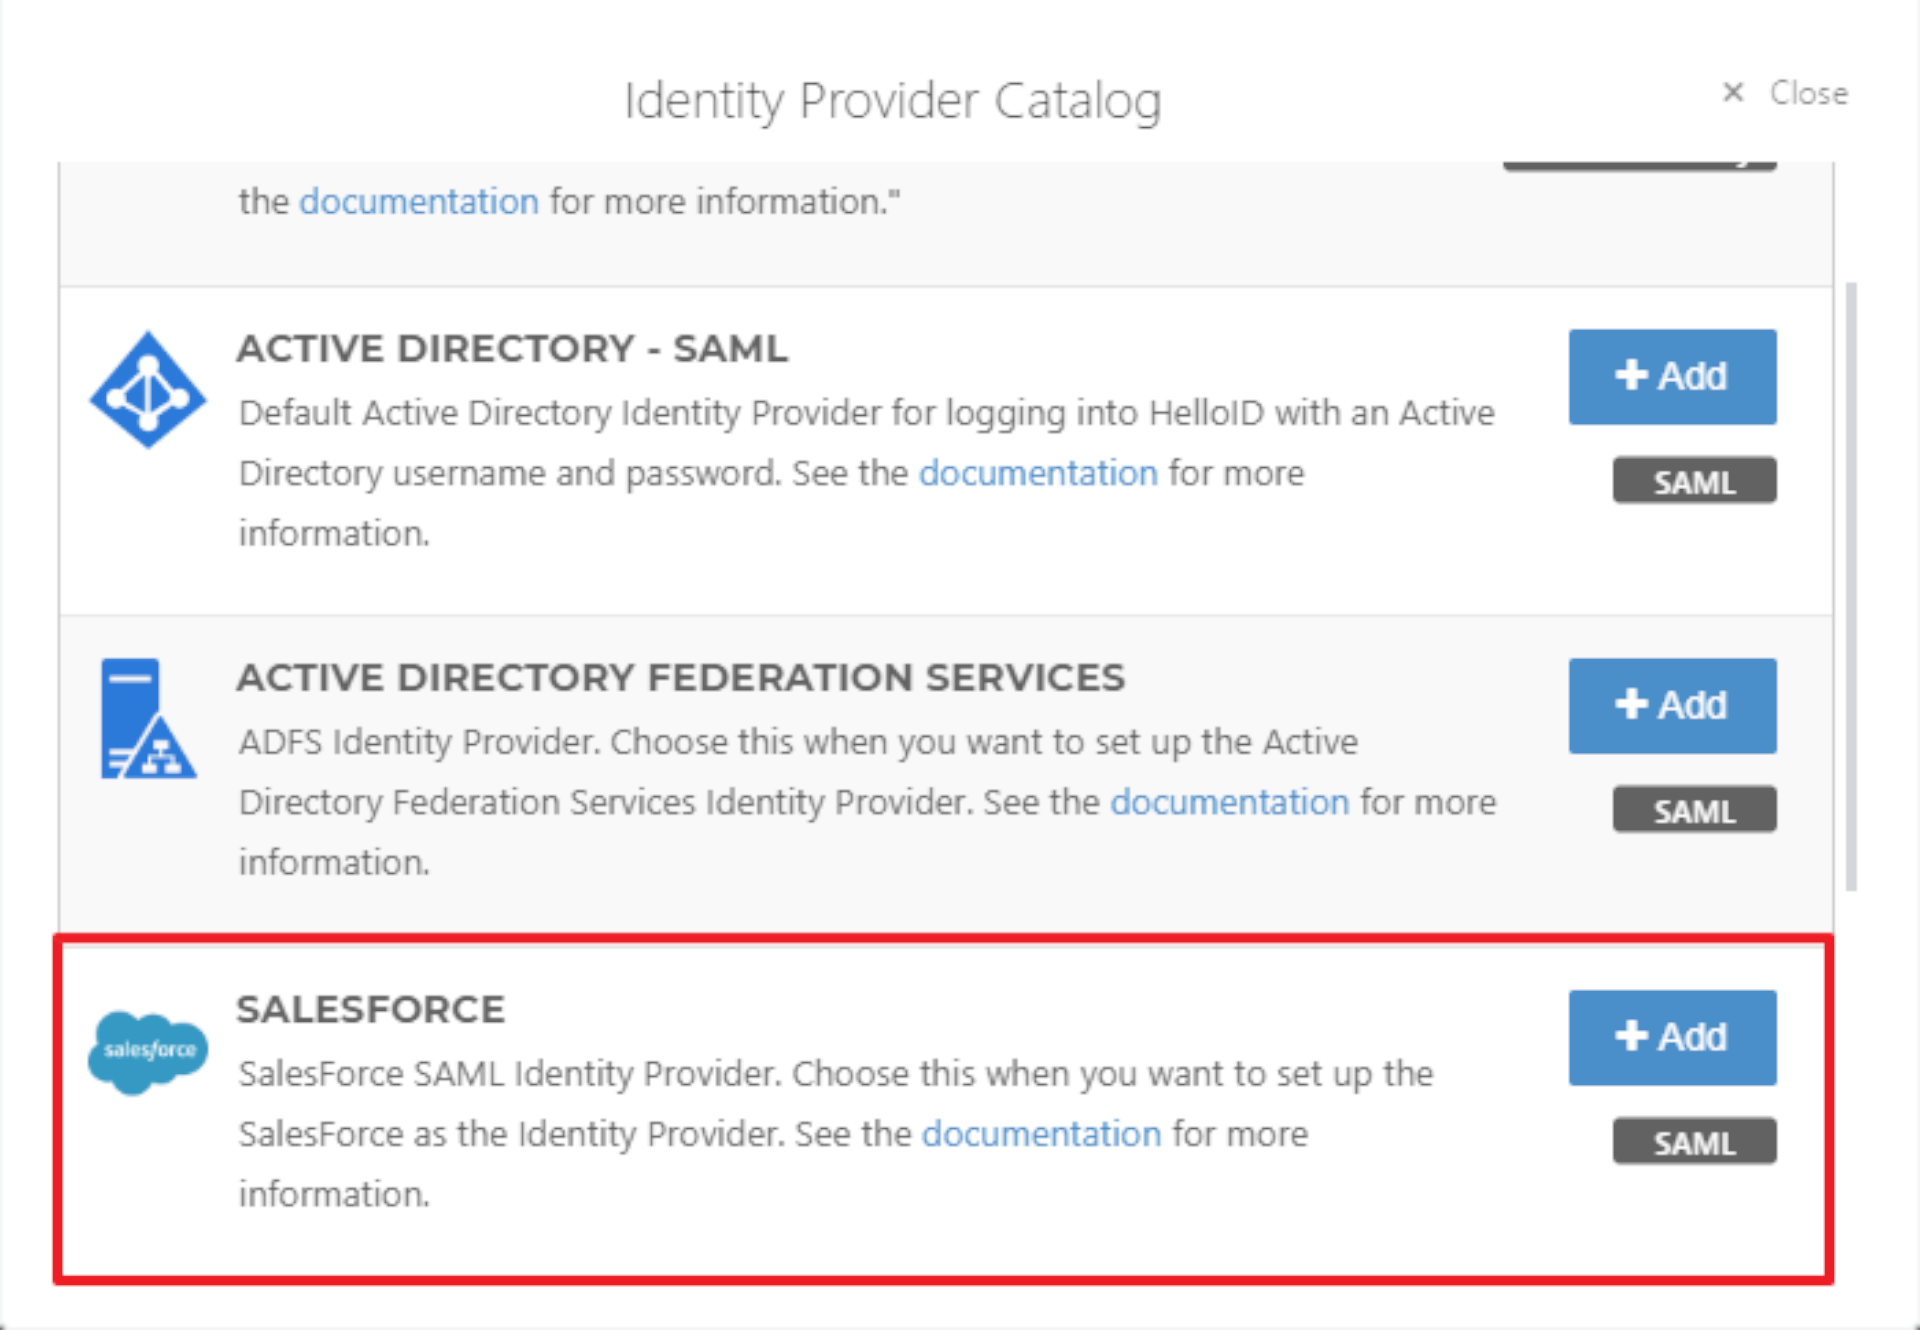 16._The_Identity_Provider_Catalog_will_open__add_the_Salesforce_SAML_Identity_Provider.png